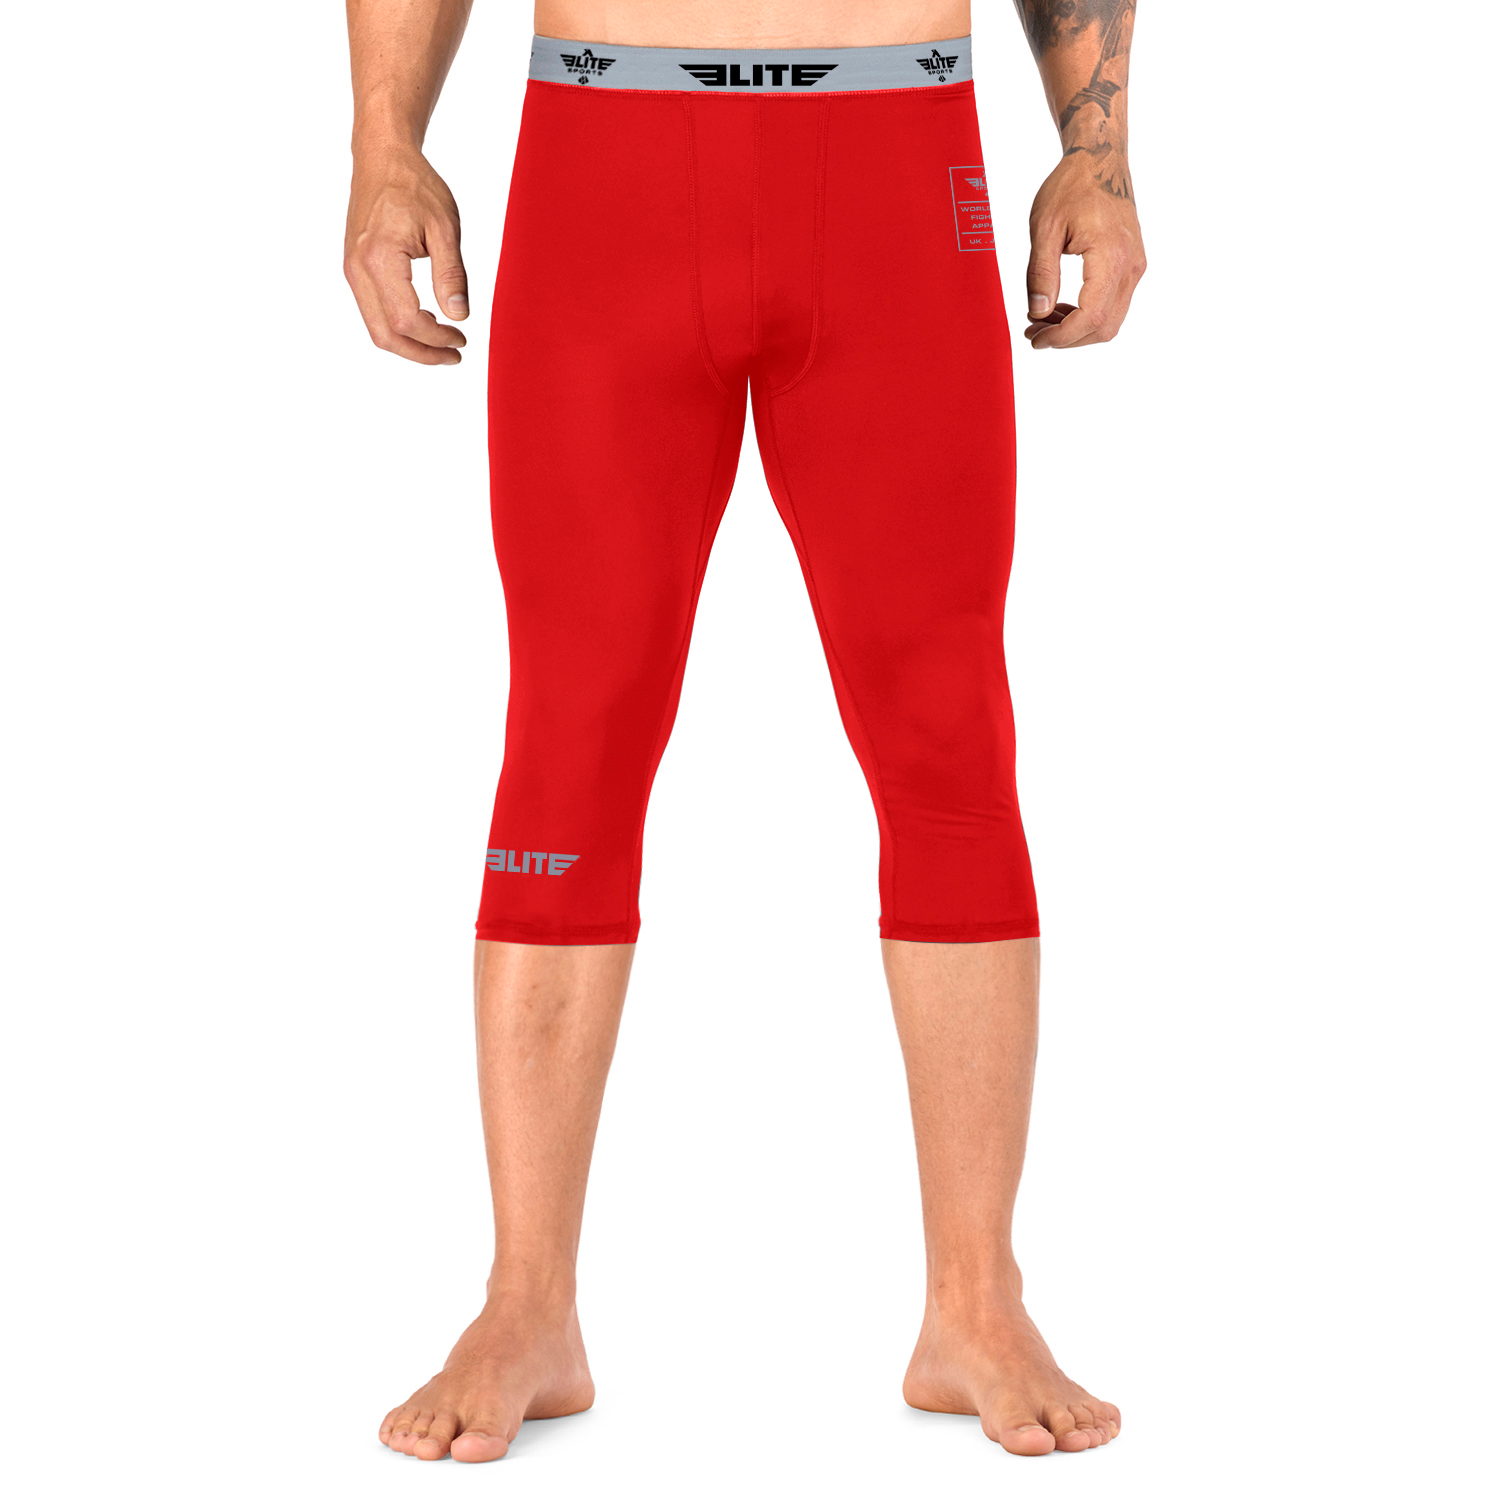 Elite Sports Three Quarter Red Compression Training Spat Pants